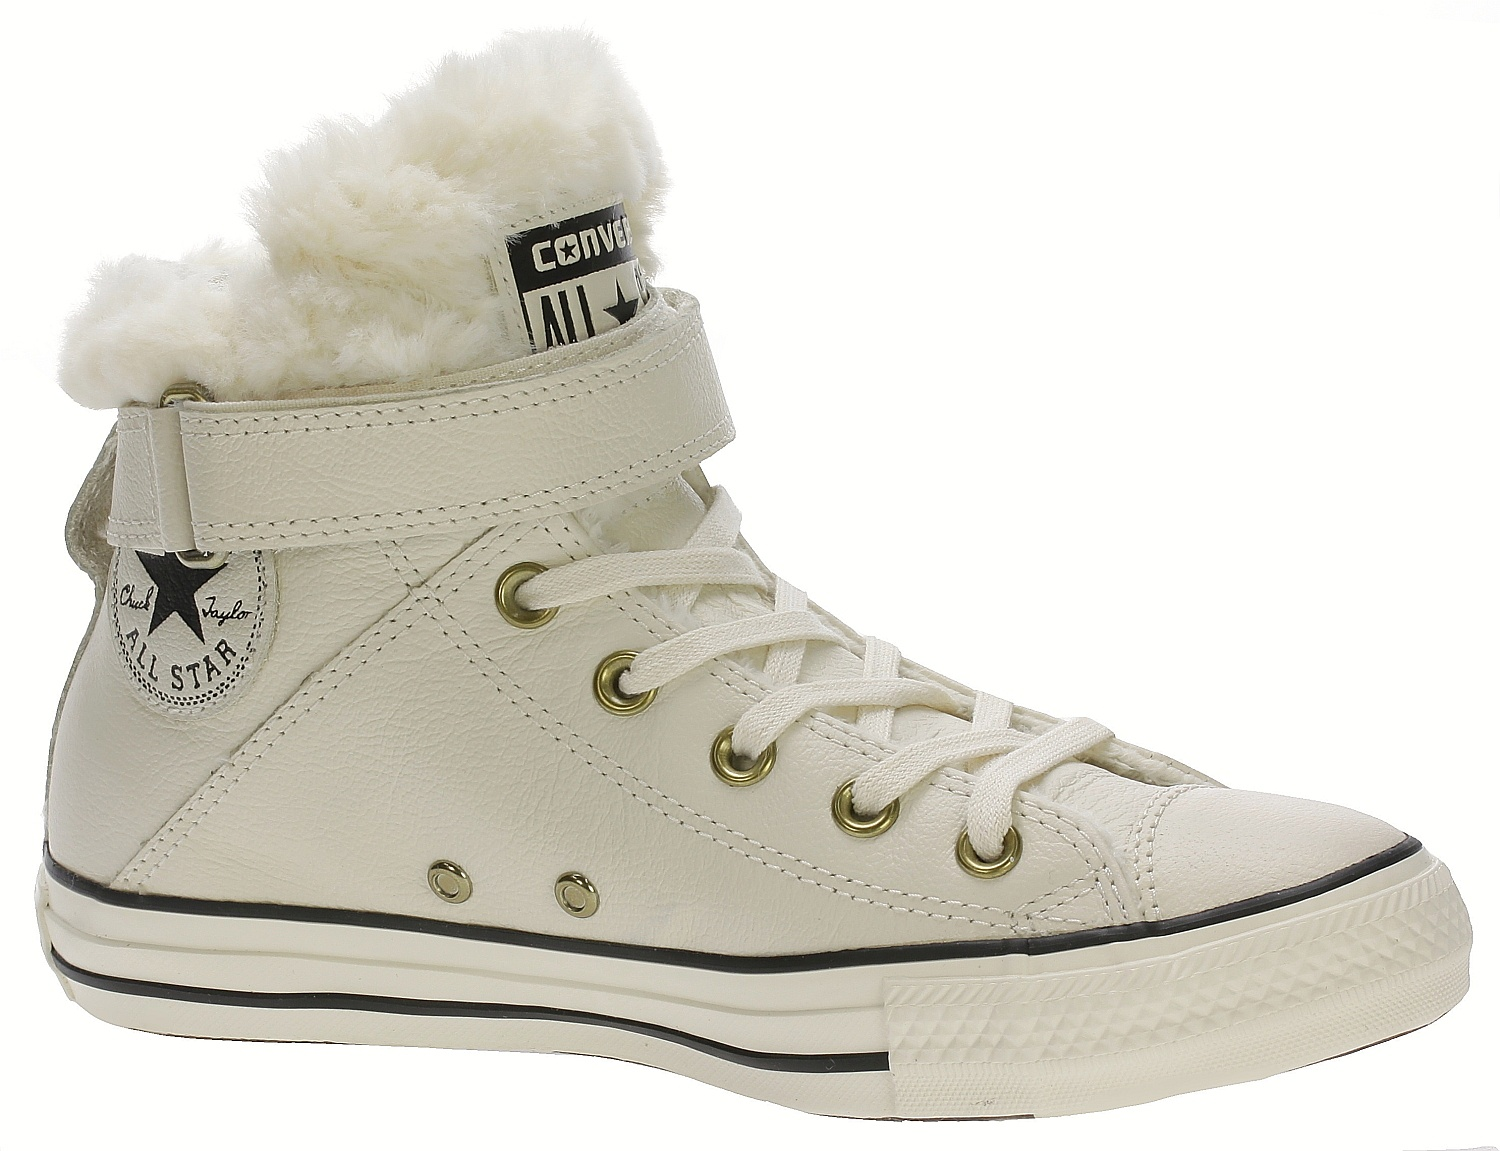 e97938723ee boty Converse Chuck Taylor All Star Brea Leather Hi - 553396 Parchment Black  - Snowboard shop